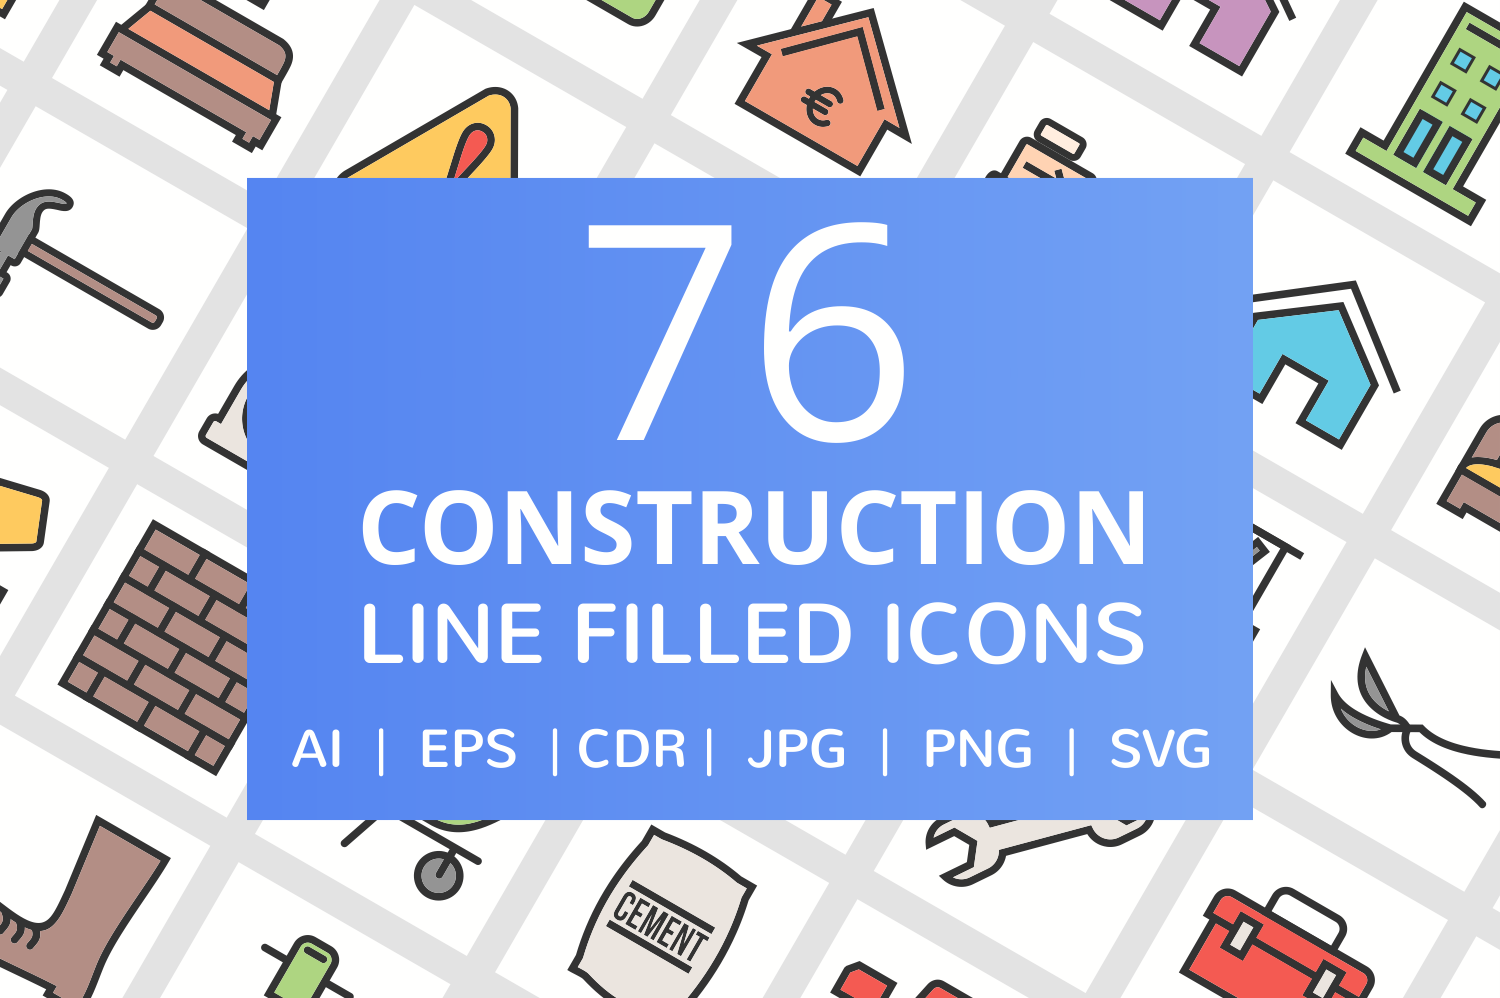 76 Construction Filled Line Icons example image 1